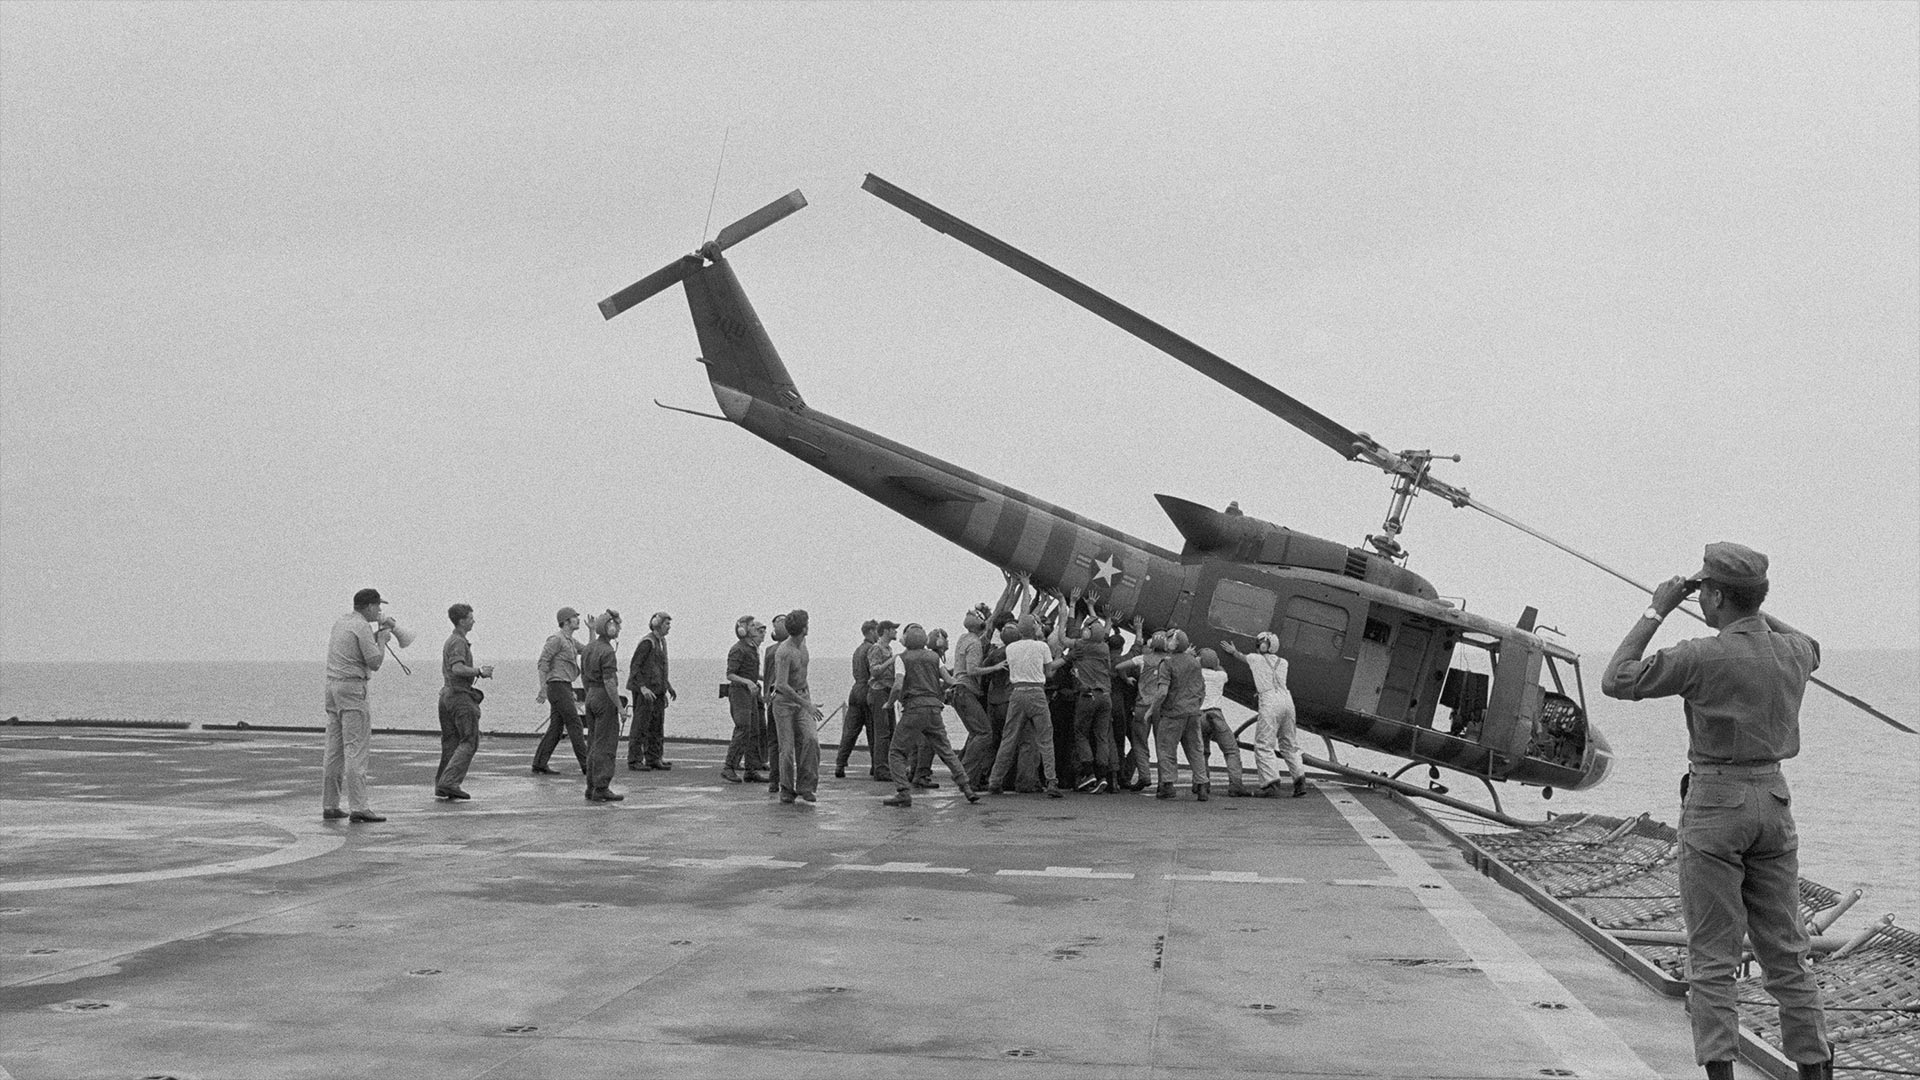 U.S. Navy personnel push a helicopter into the sea to make room for more evacuation flights from Saigon. April 29, 1975.